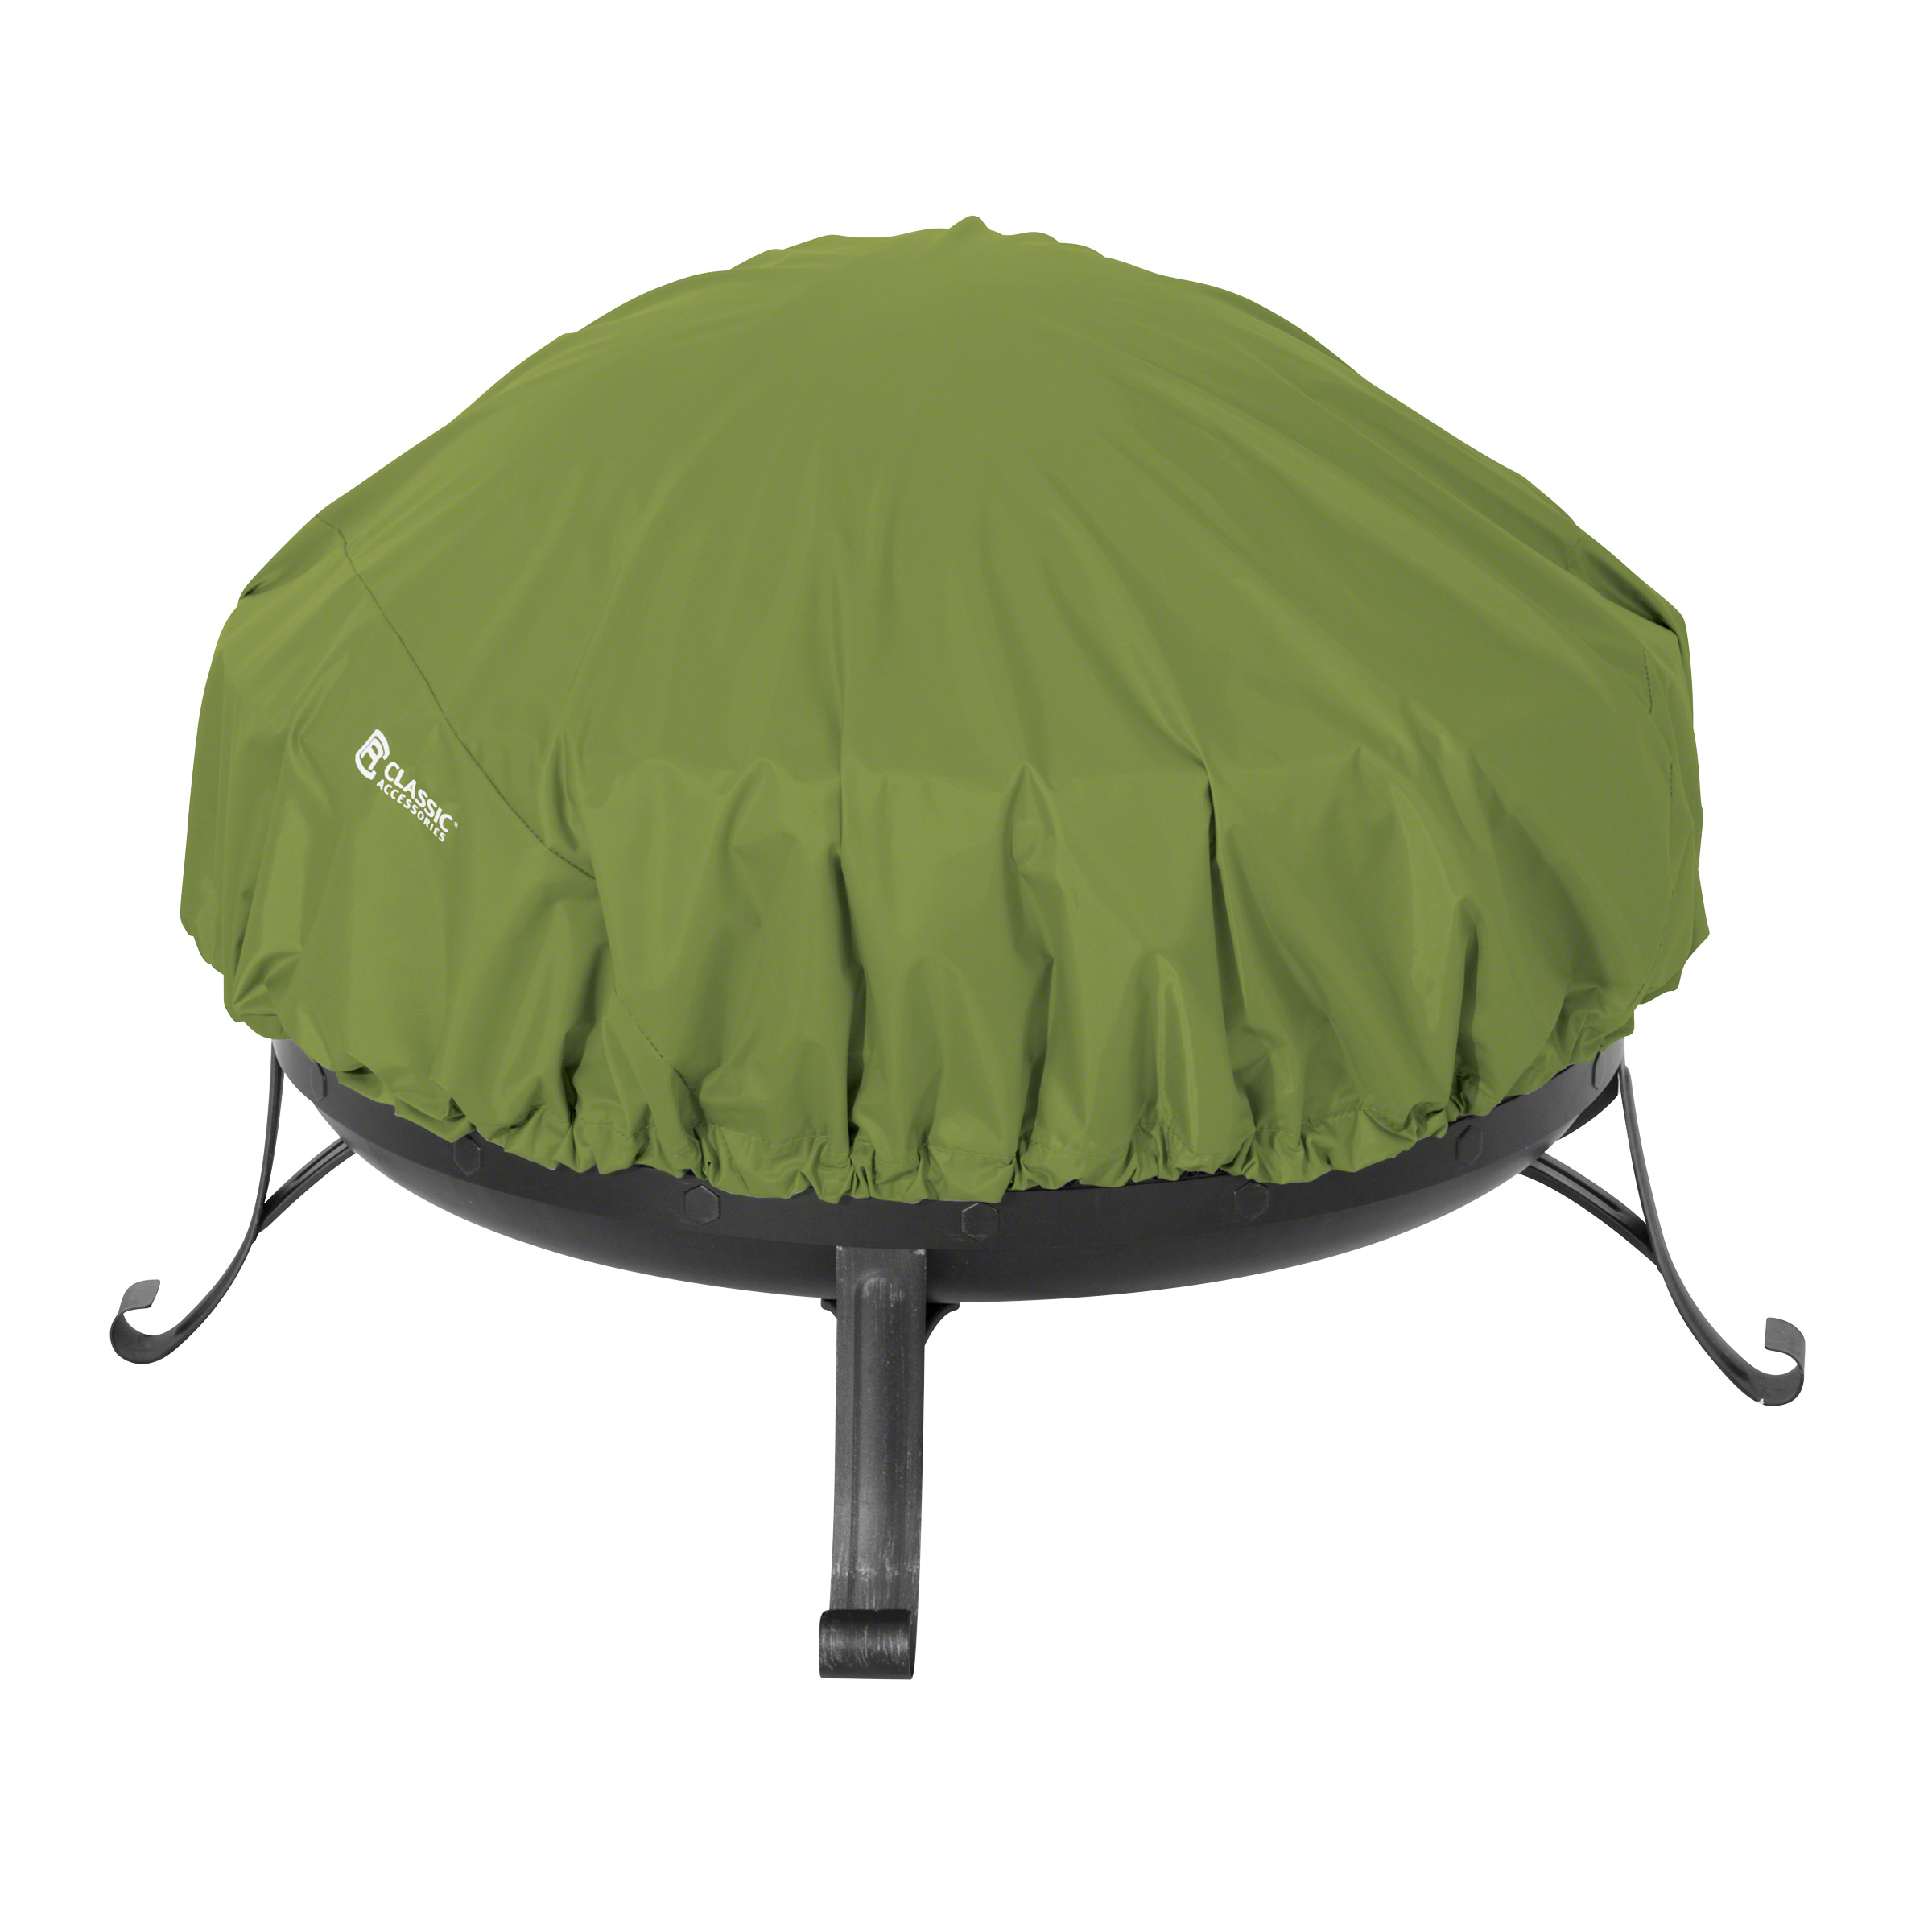 Classic Accessories Sodo™ Round Fire Pit Cover - Tough and Weather Resistant Patio Cover (55-3945-031901-EC)